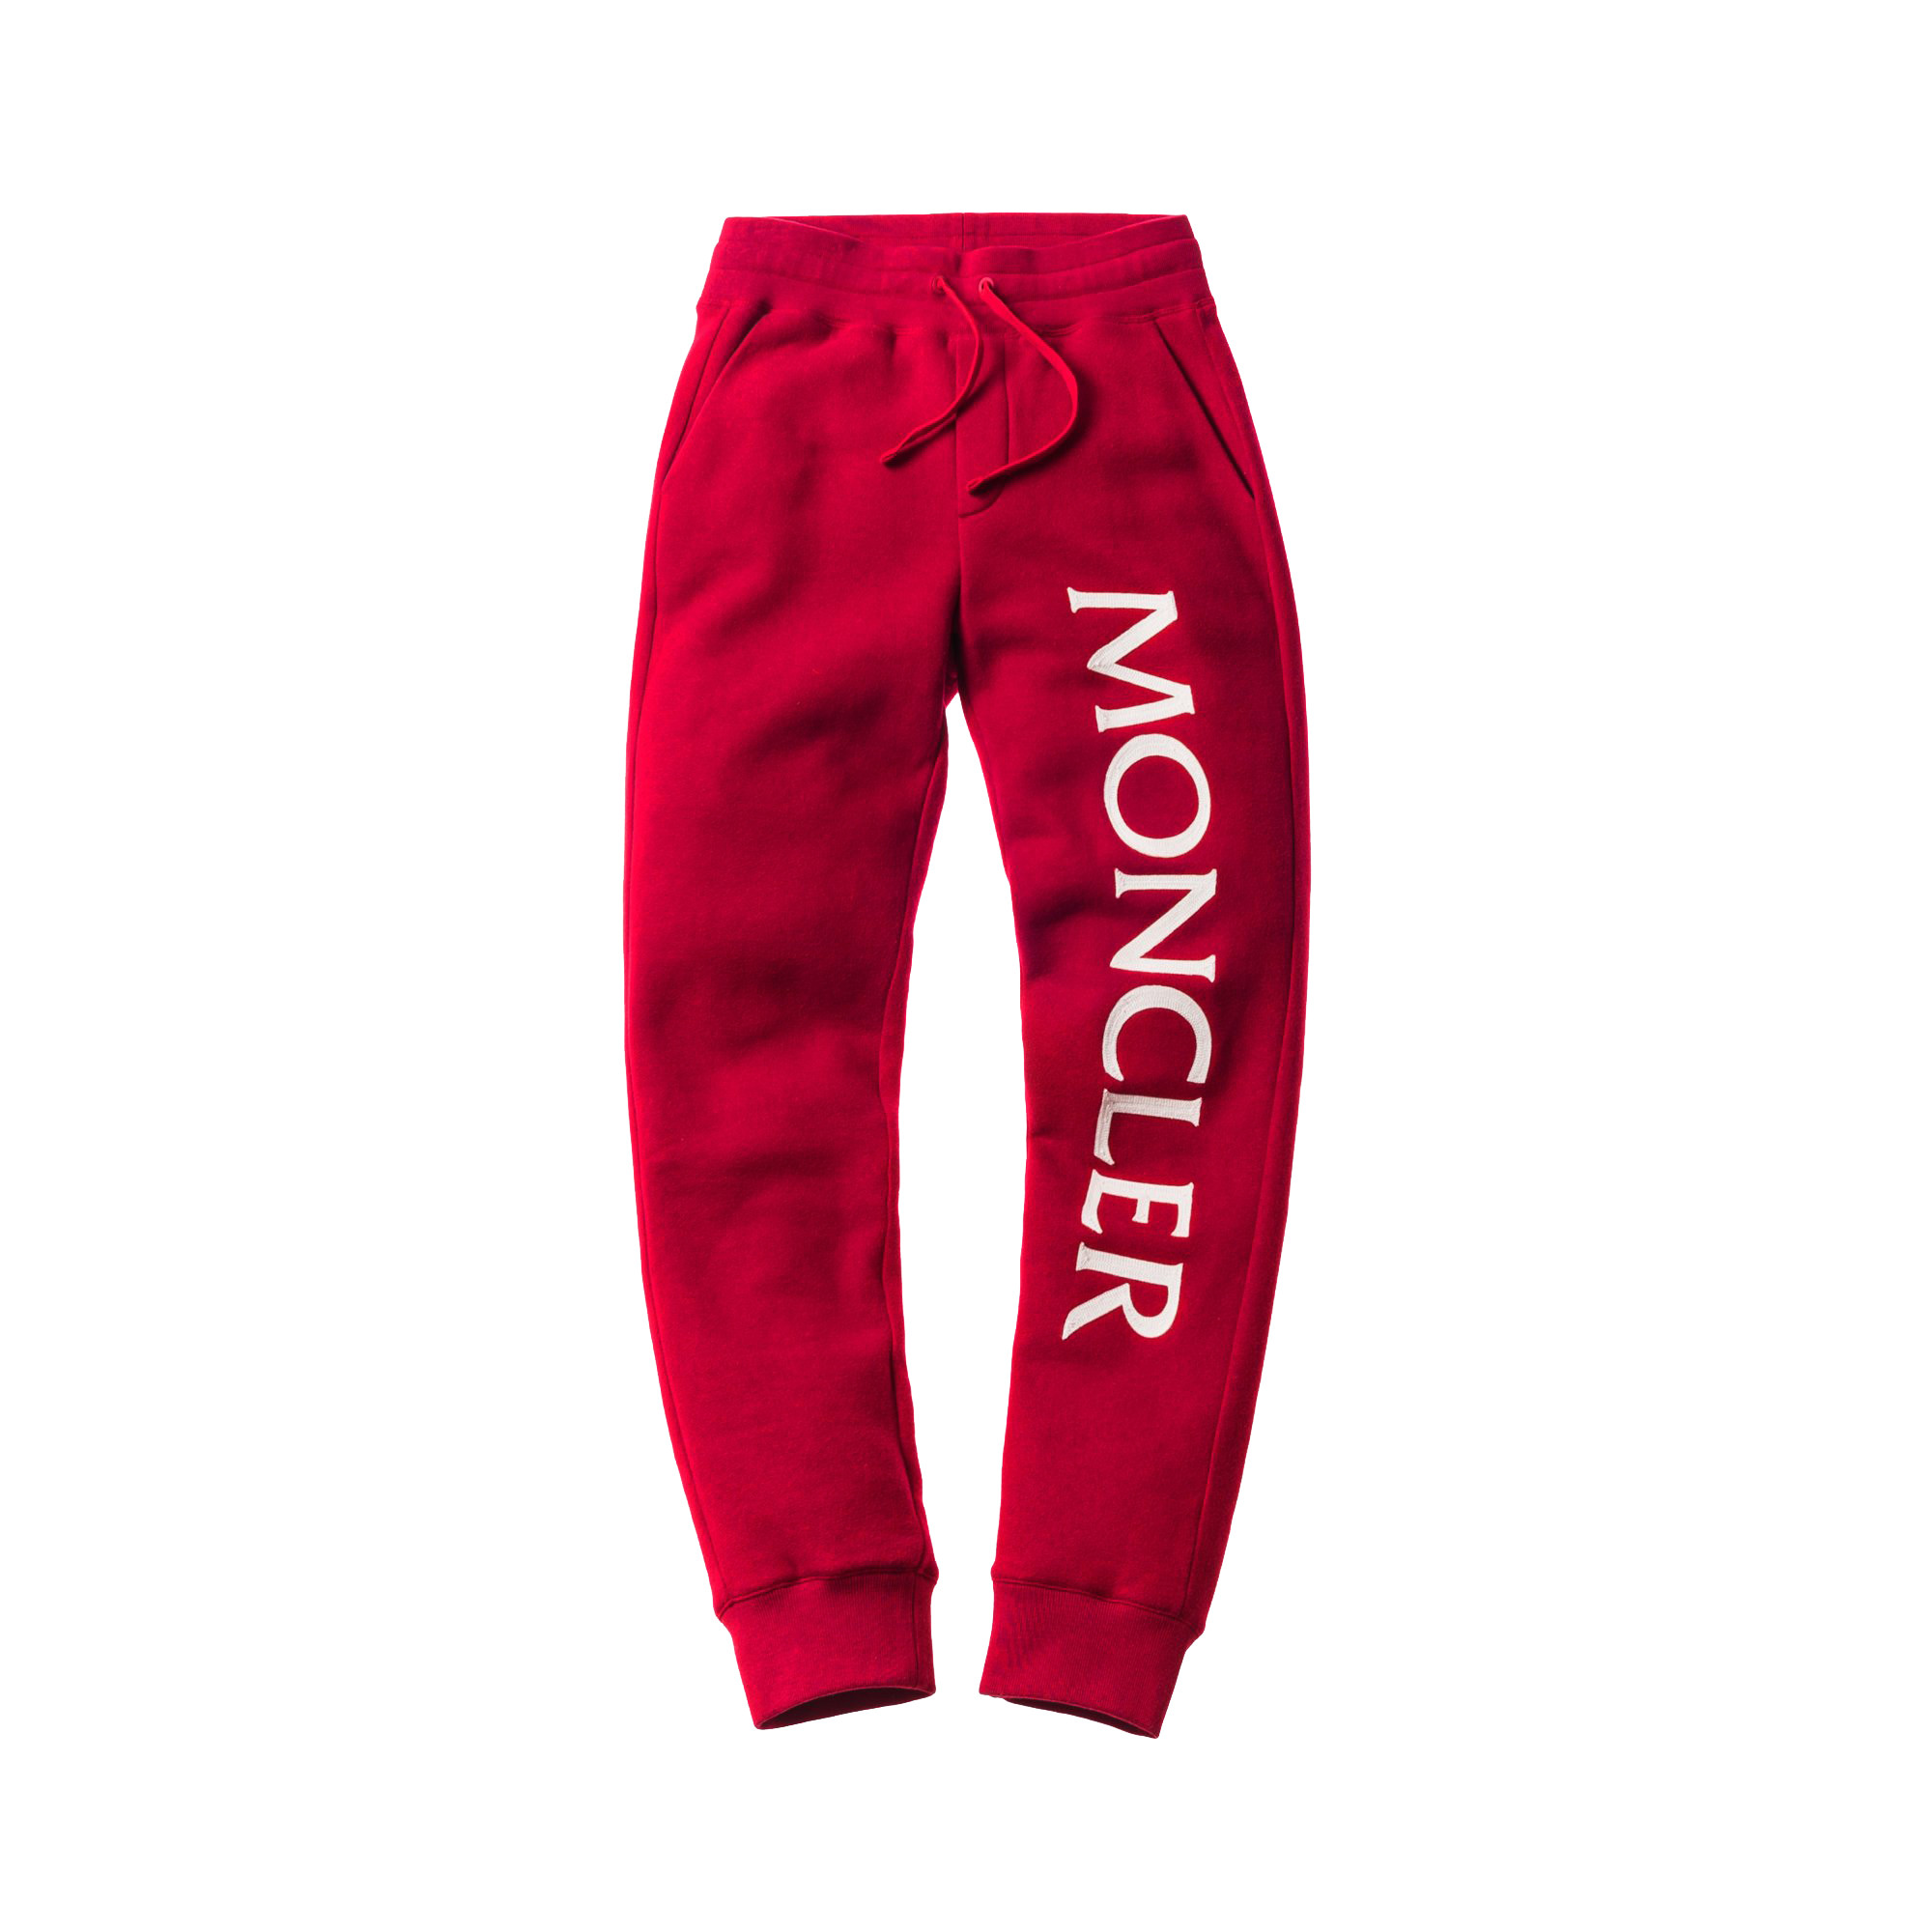 moncler red sweatpants